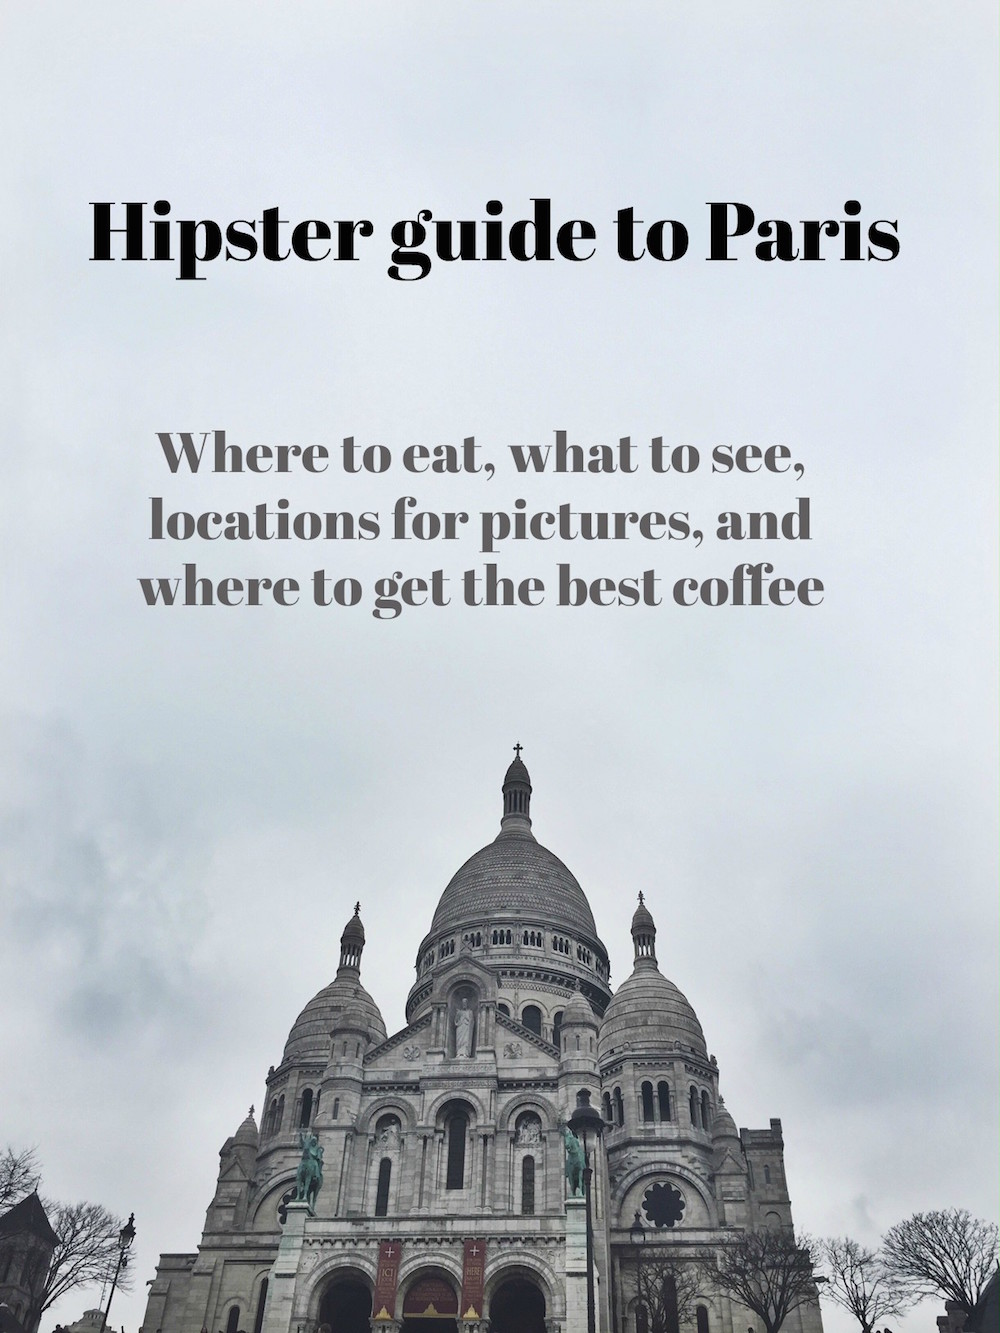 Hipster guide to Paris